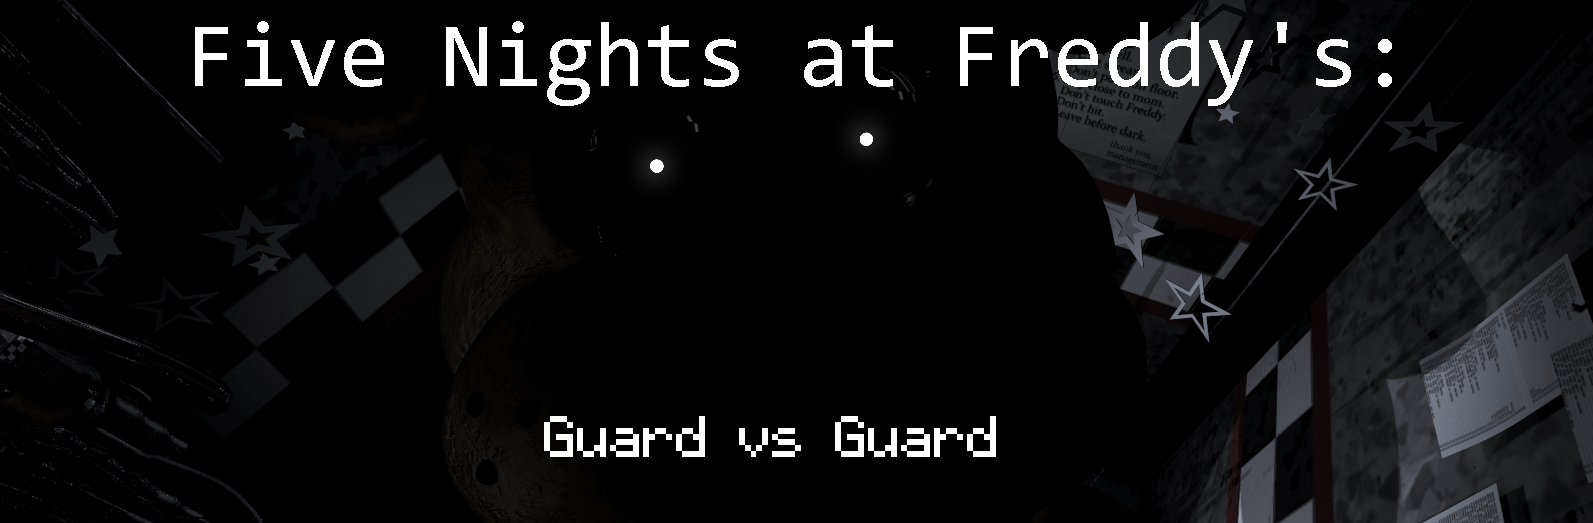 Five Nights At Freddy's: Guard Vs Guard (Online)